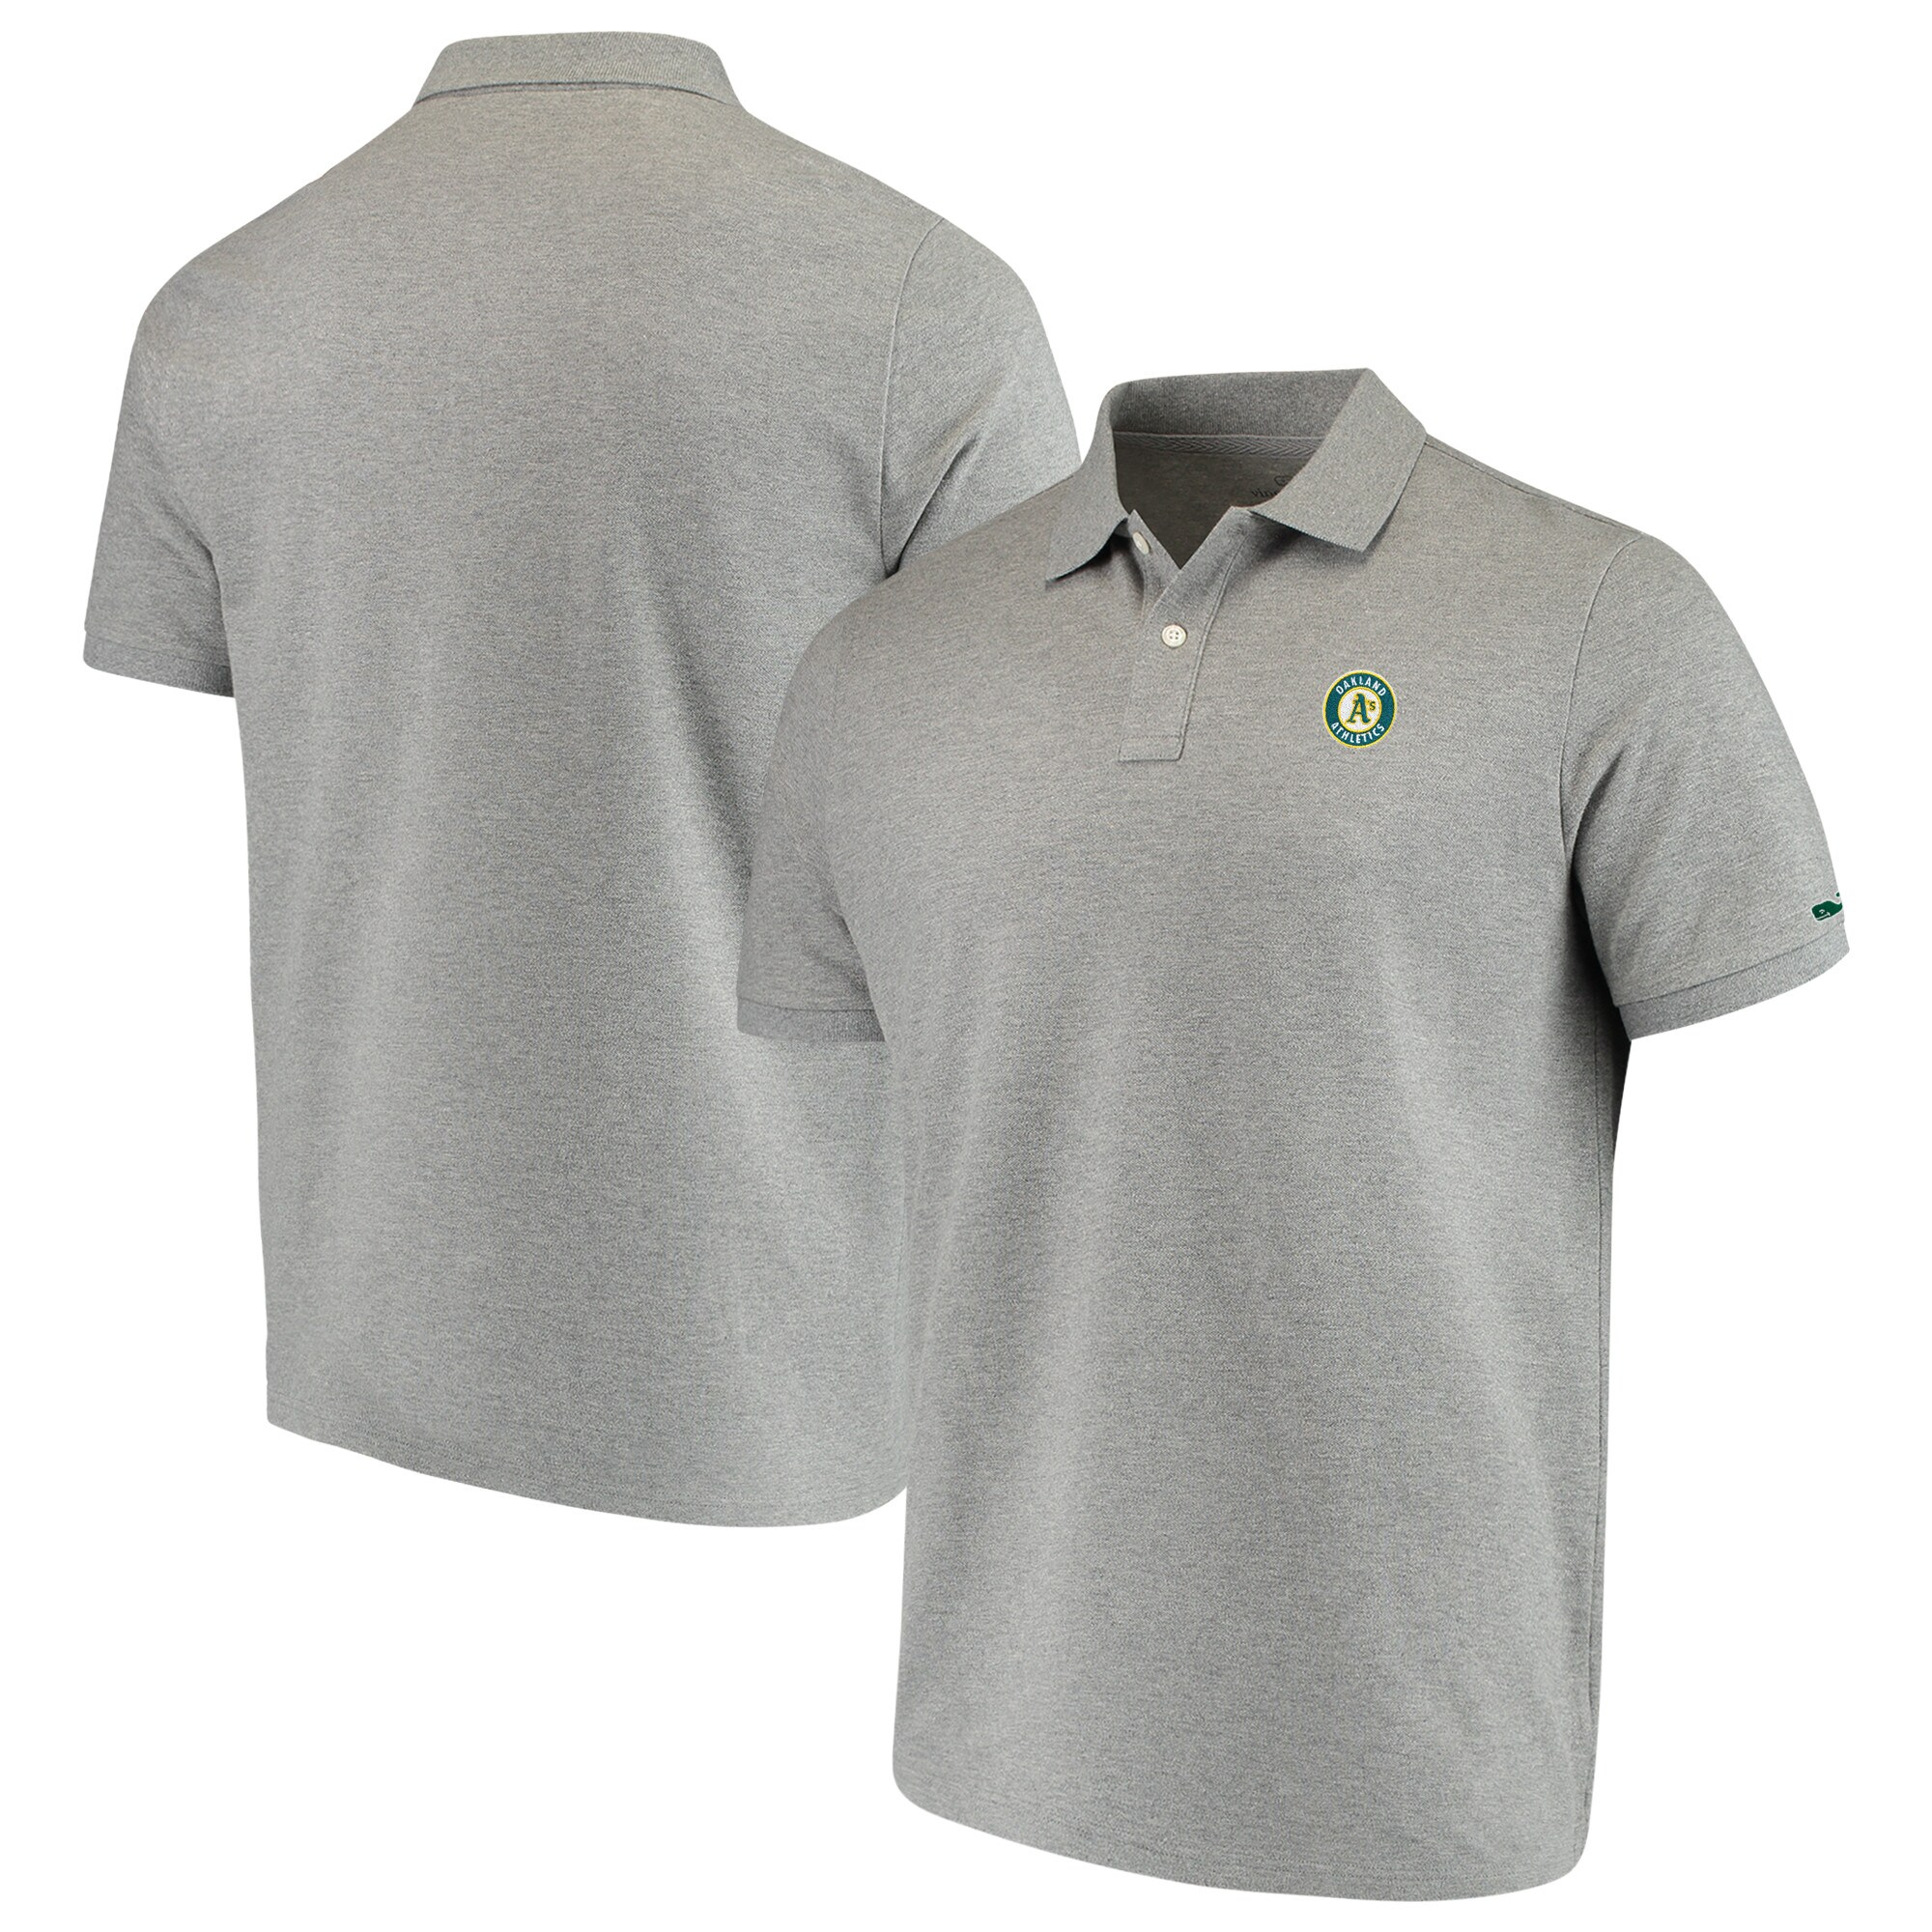 Oakland Athletics Vineyard Vines Stretch Pique Polo - Heathered Gray